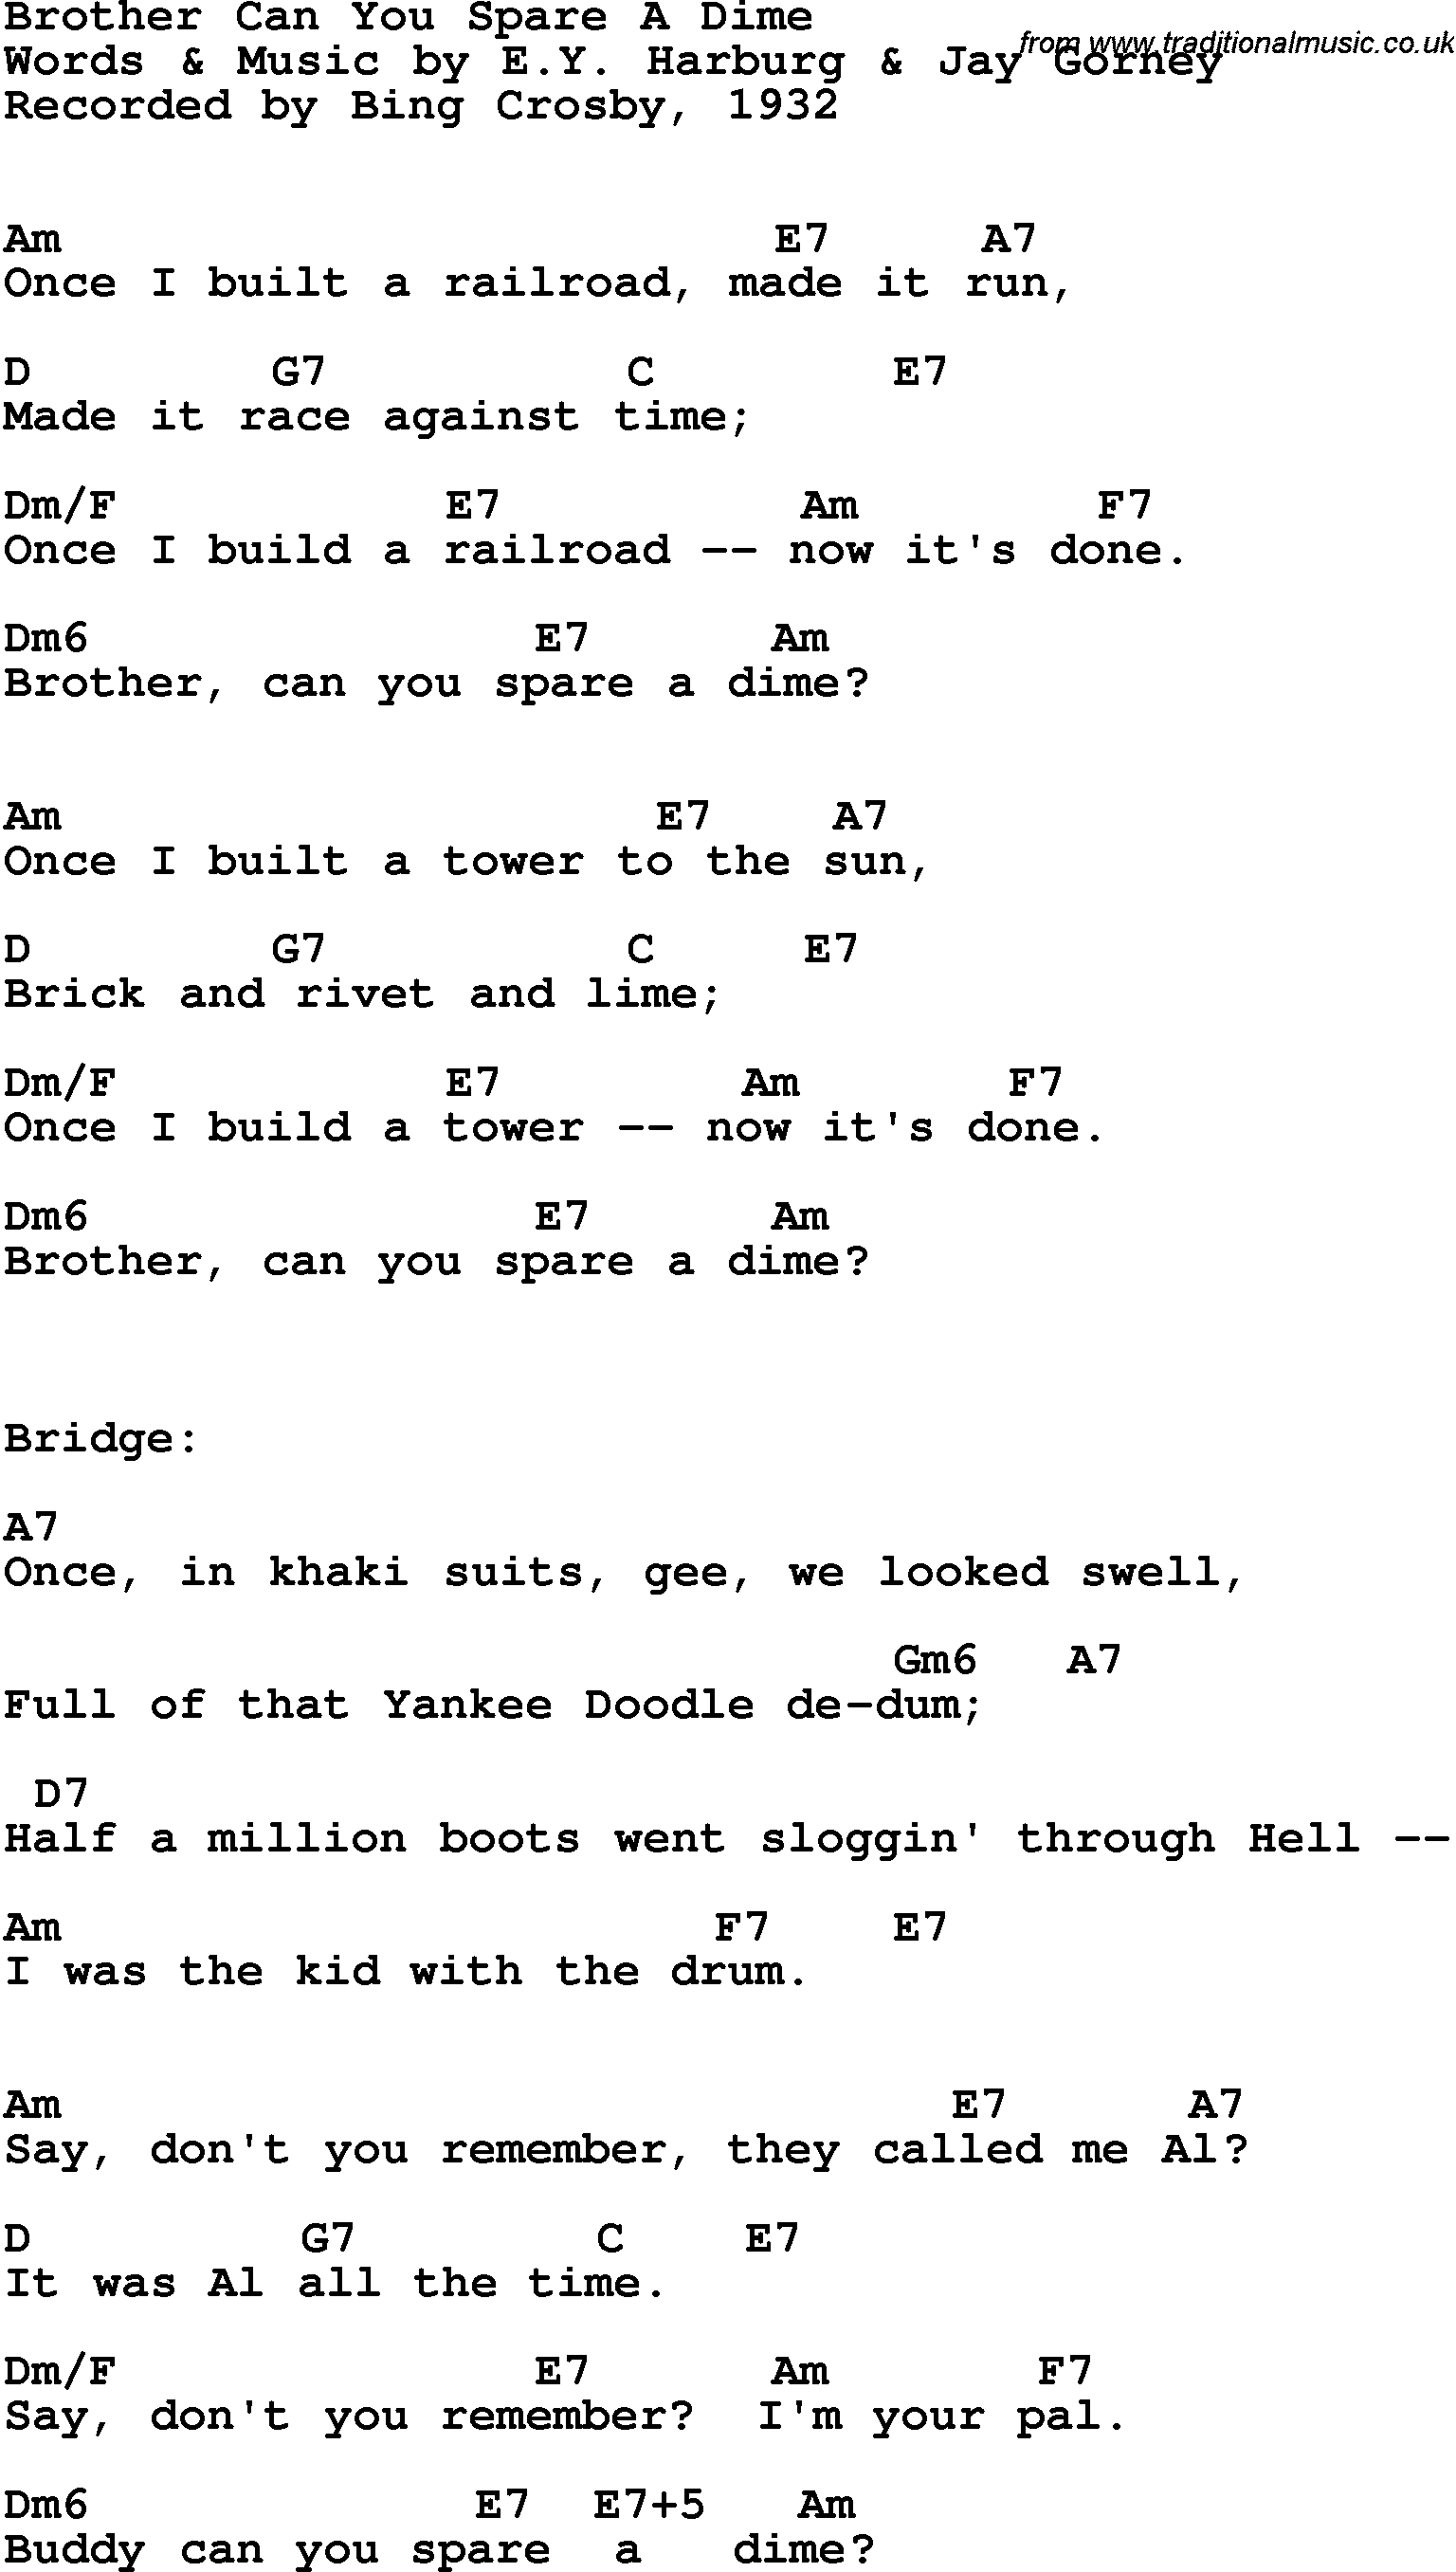 Song Lyrics With Guitar Chords For Brother Can You Spare A Dime